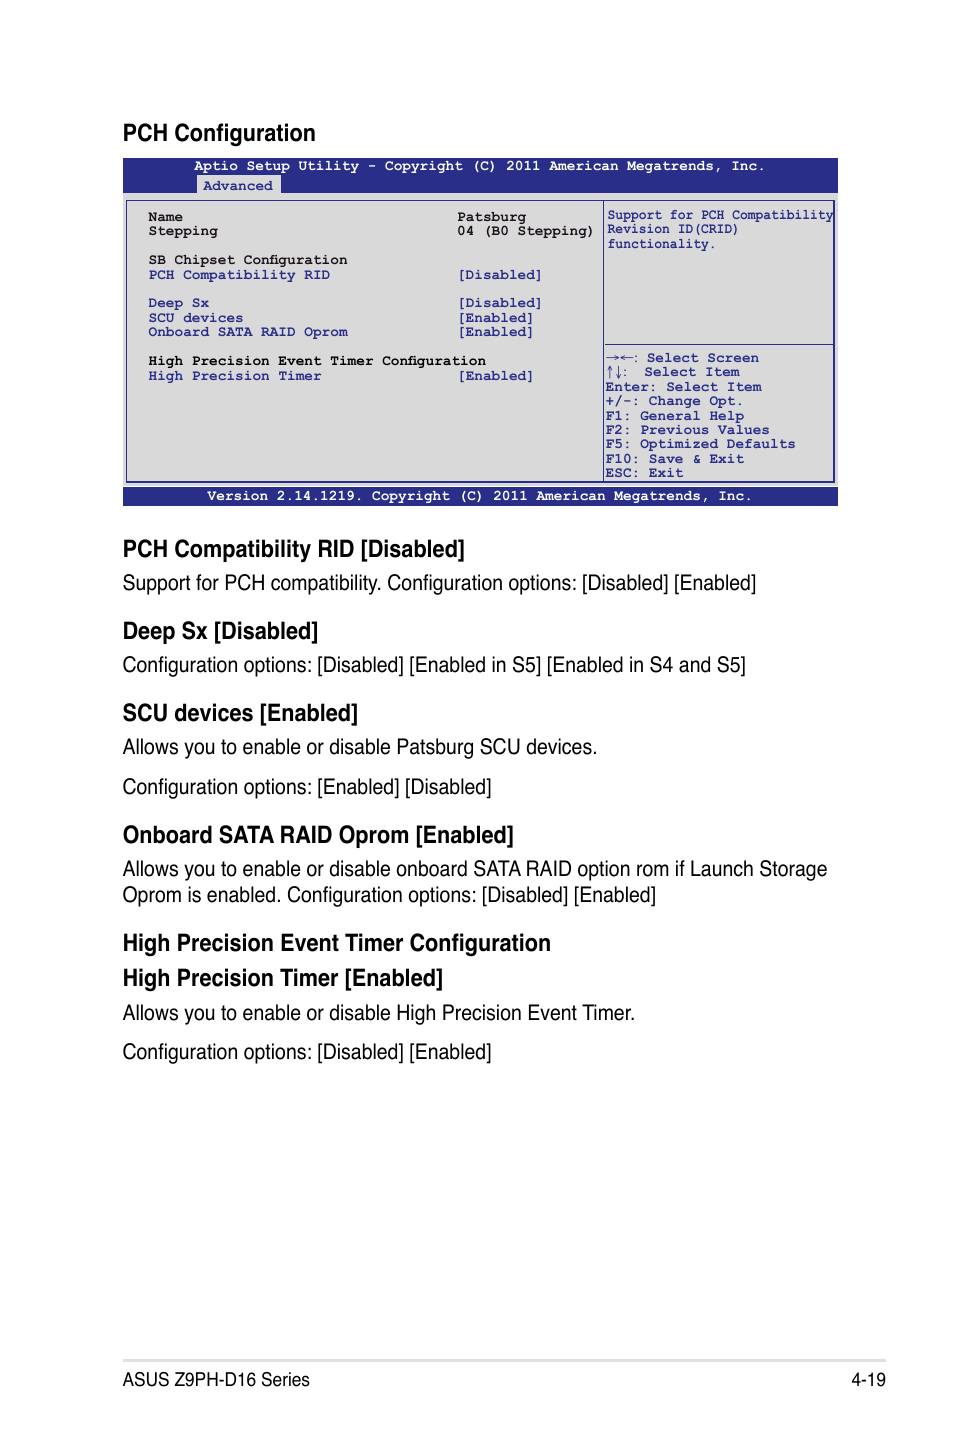 Pch configuration pch compatibility rid [disabled, Deep sx